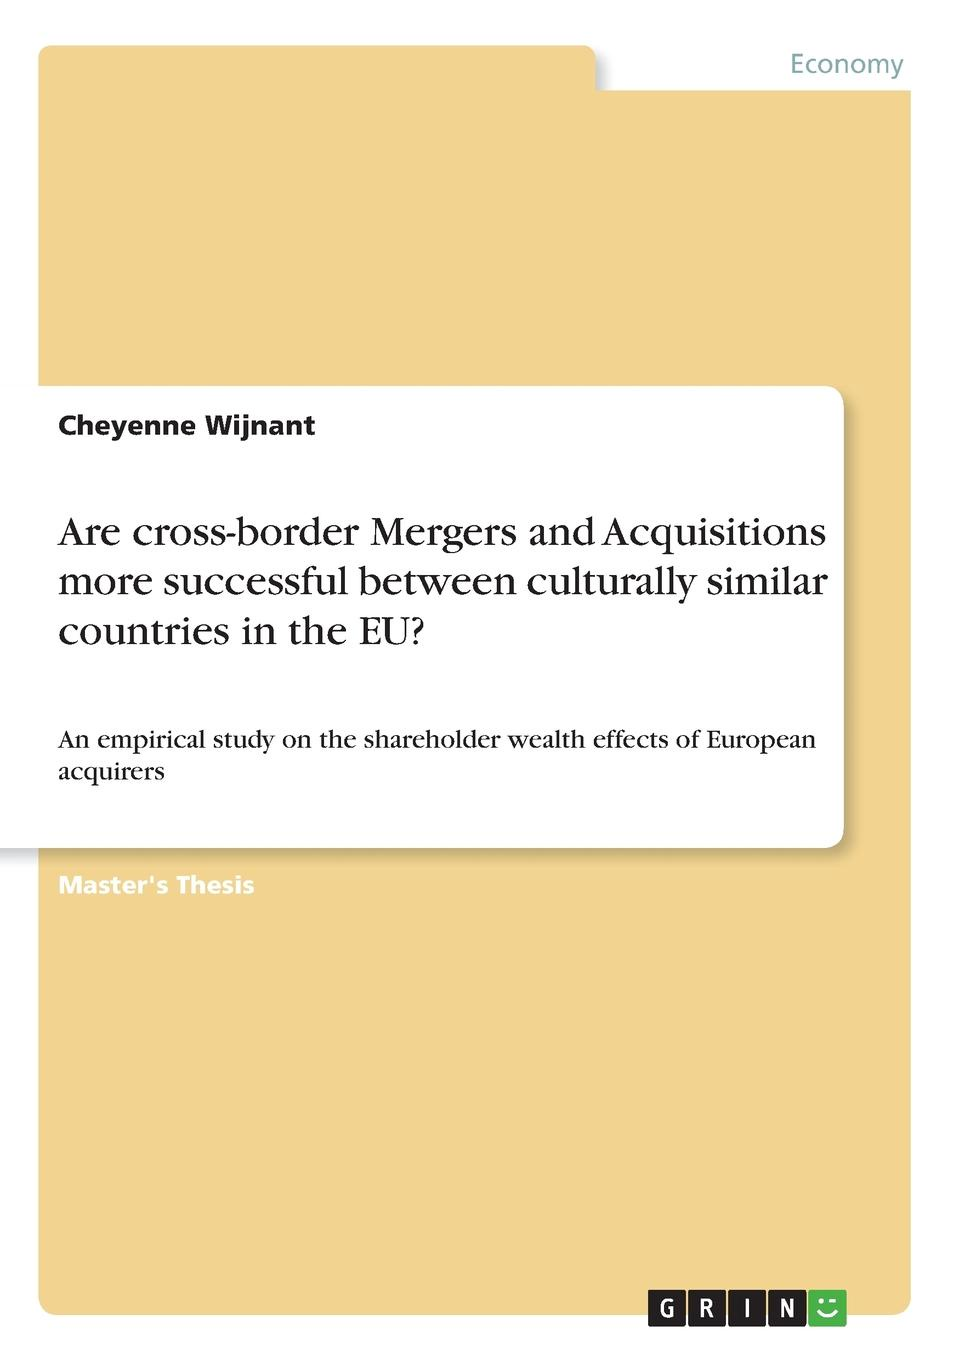 Cheyenne Wijnant Are cross-border Mergers and Acquisitions more successful between culturally similar countries in the EU. sherwyn morreale building the high trust organization strategies for supporting five key dimensions of trust